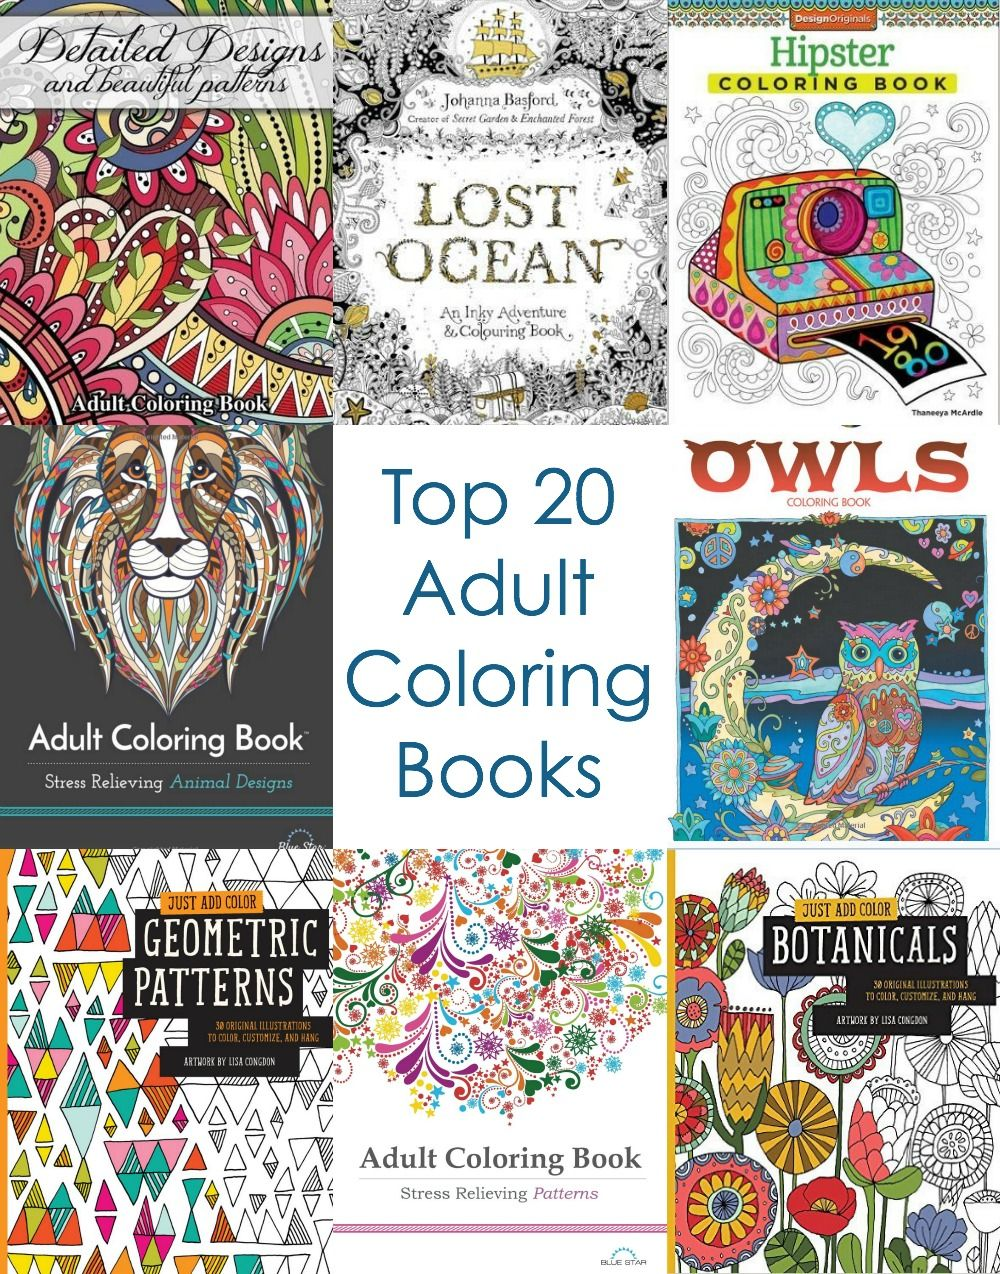 How much is the coloring book for adults - Top 20 Adult Coloring Books